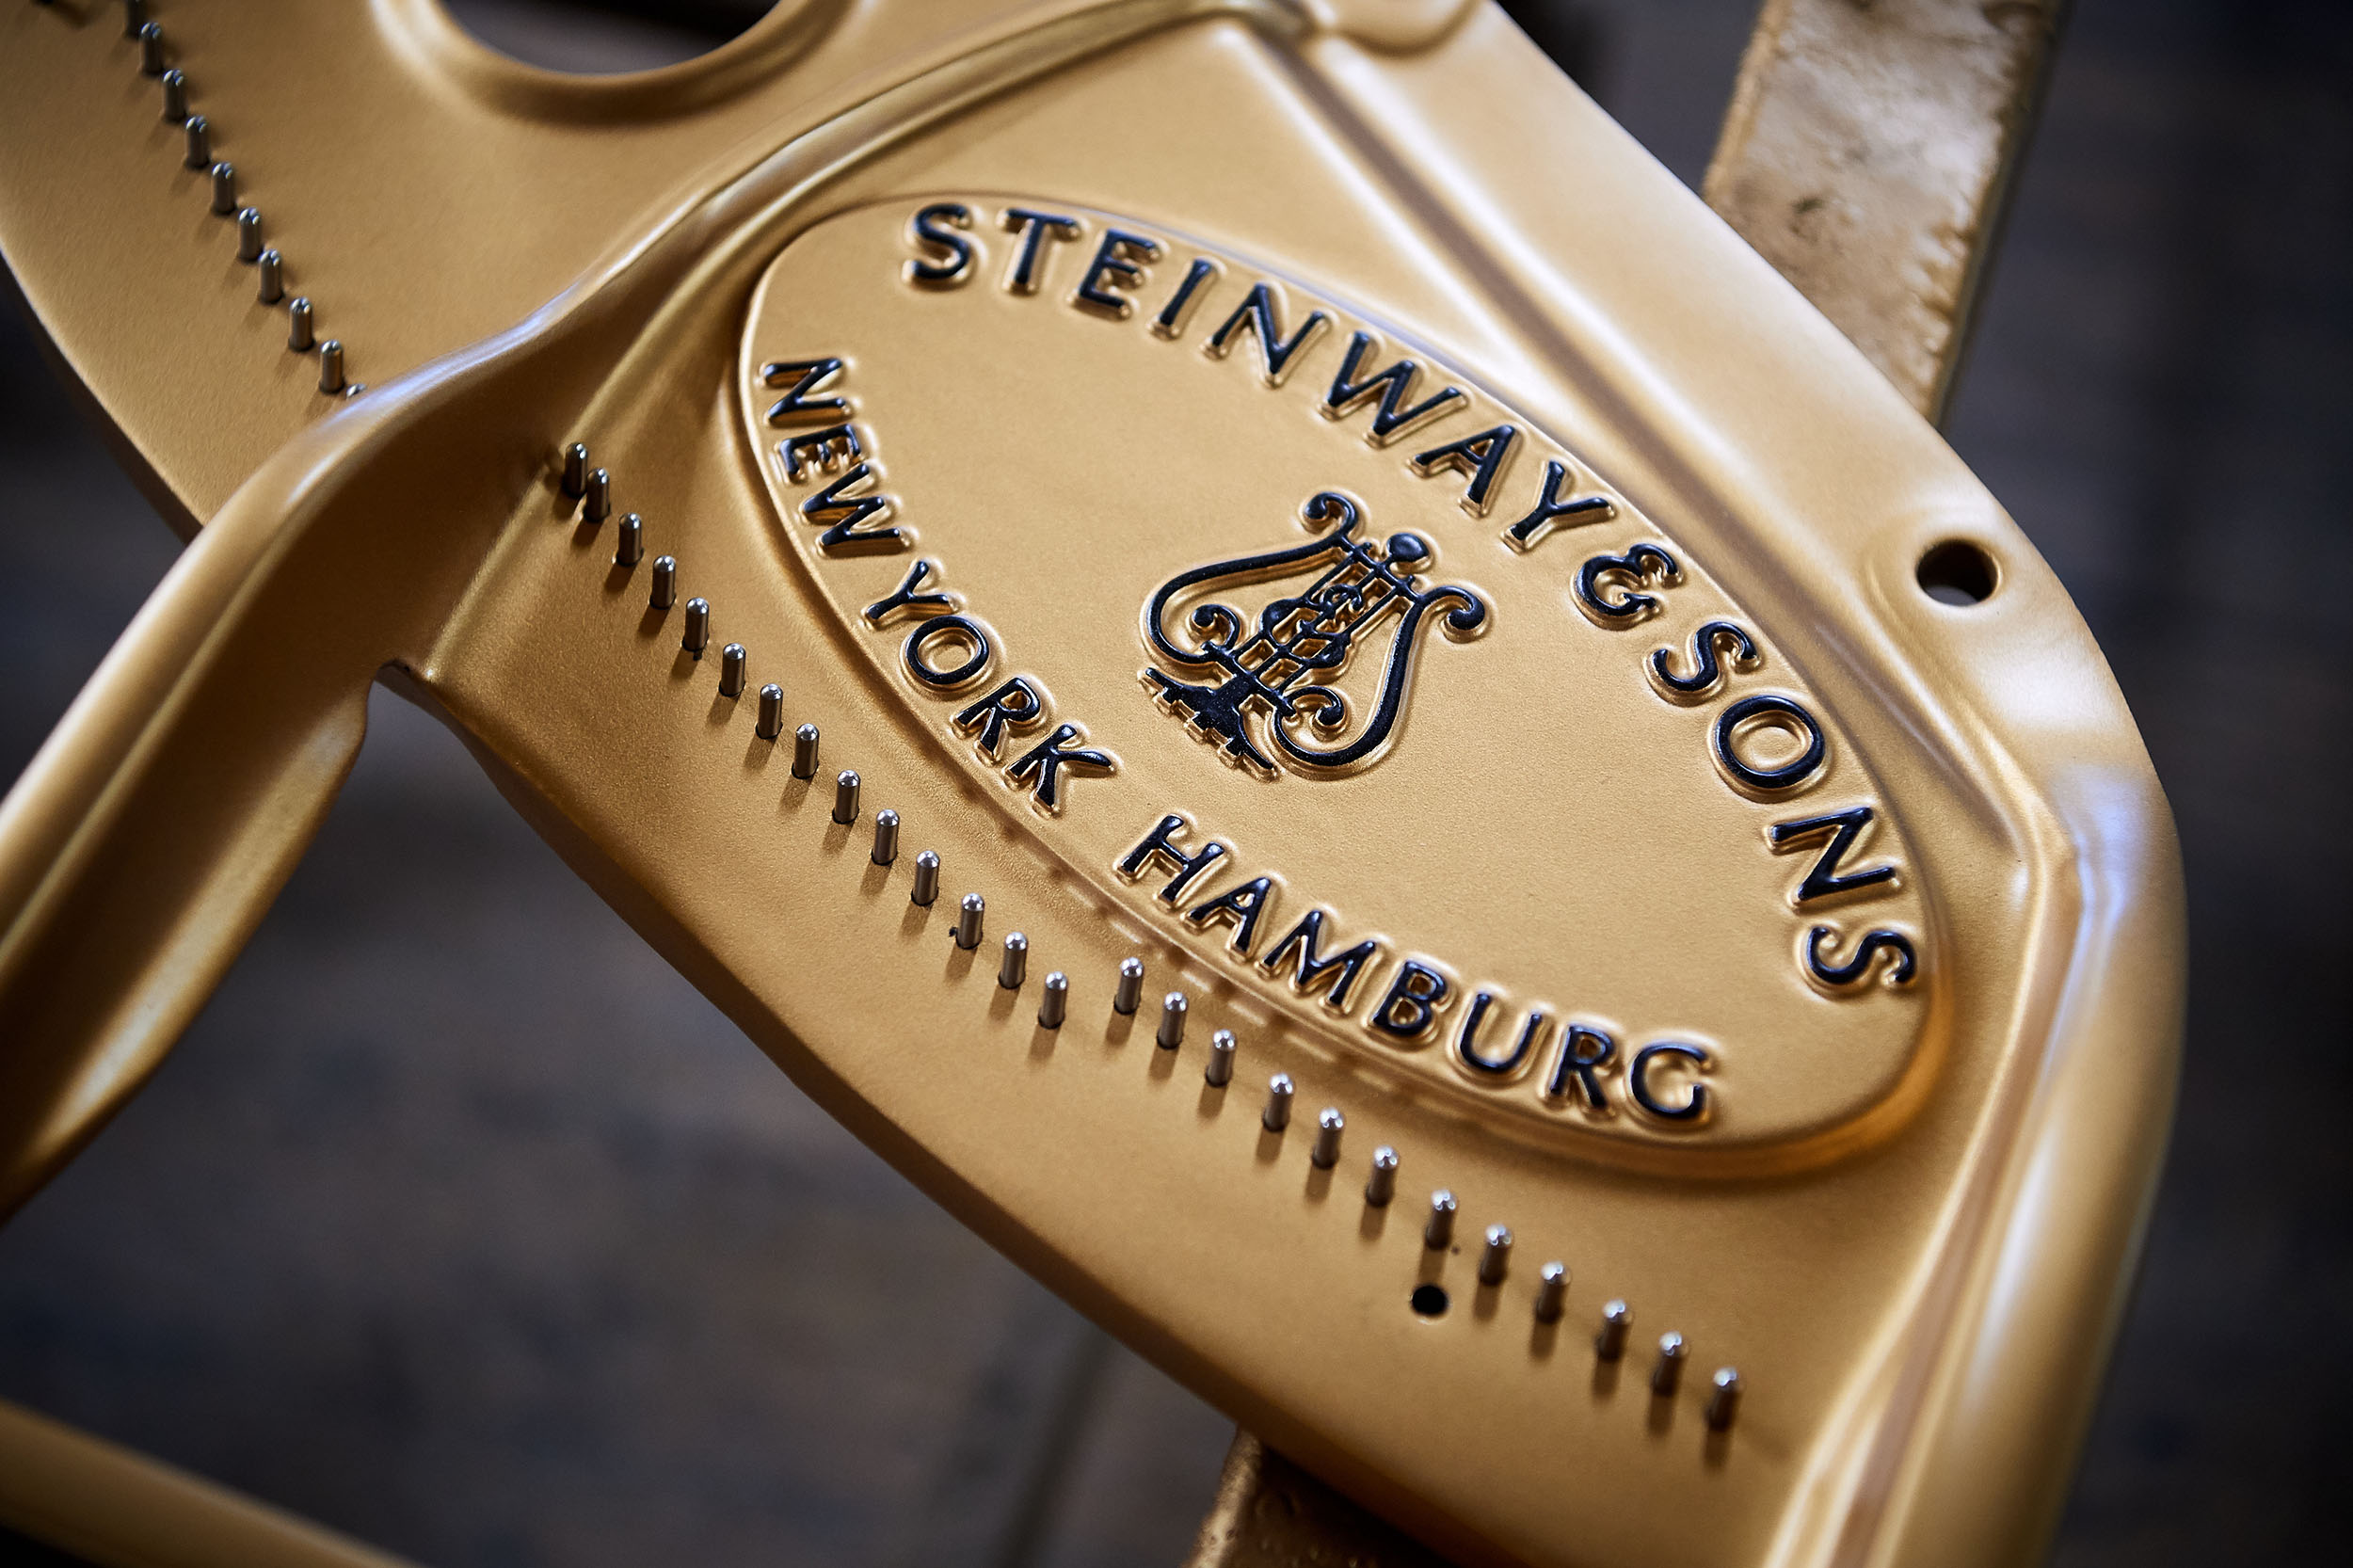 Detail of a cast iron frame at the Steinway & Sons factory